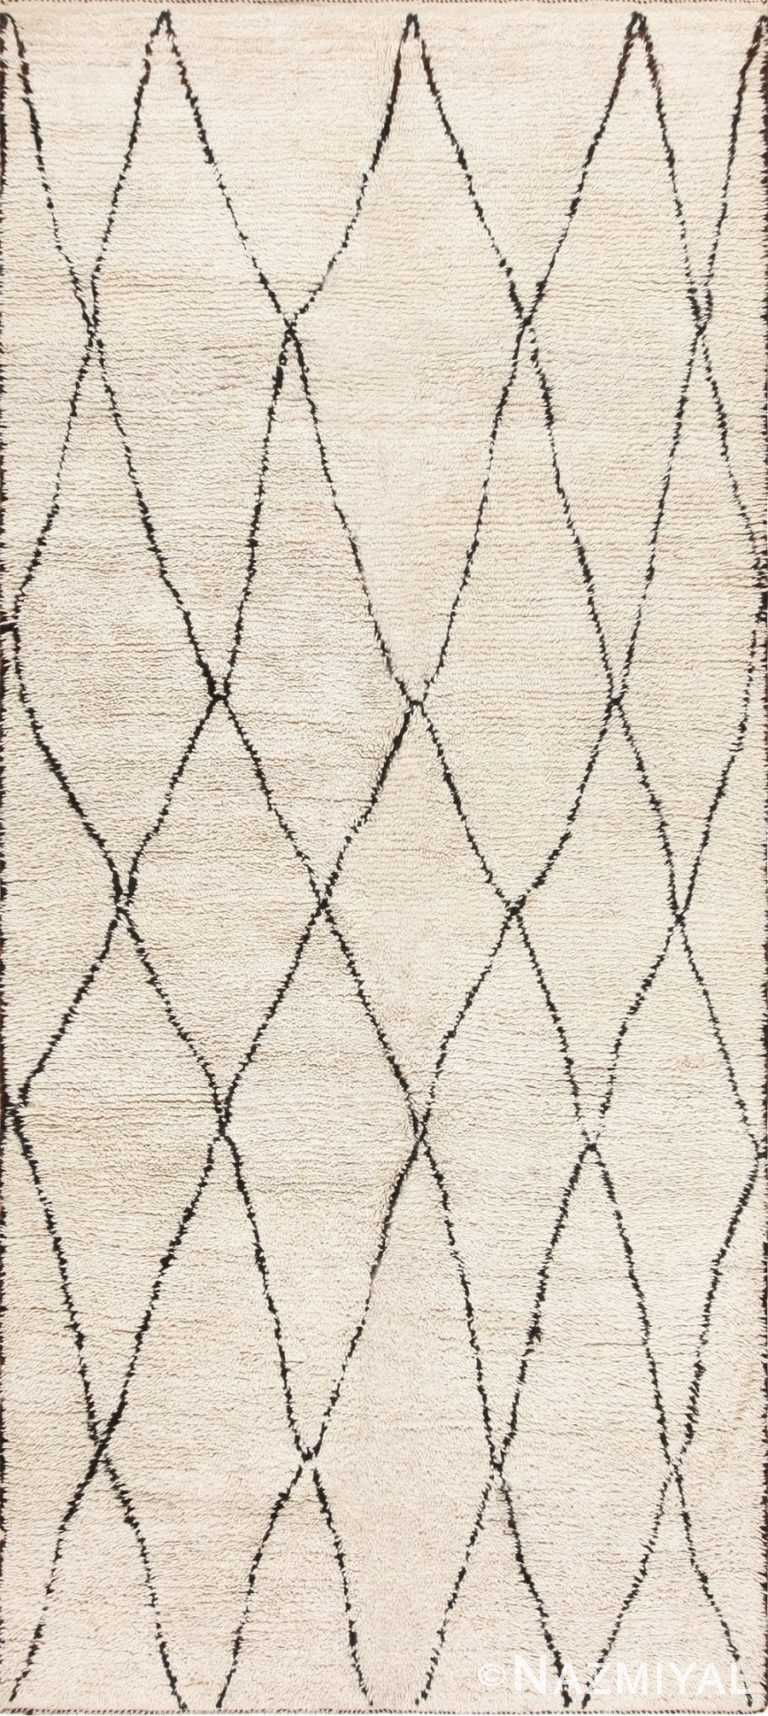 Cream and Black Vintage Moroccan Beni Ourain Carpet 47928 Nazmiyal